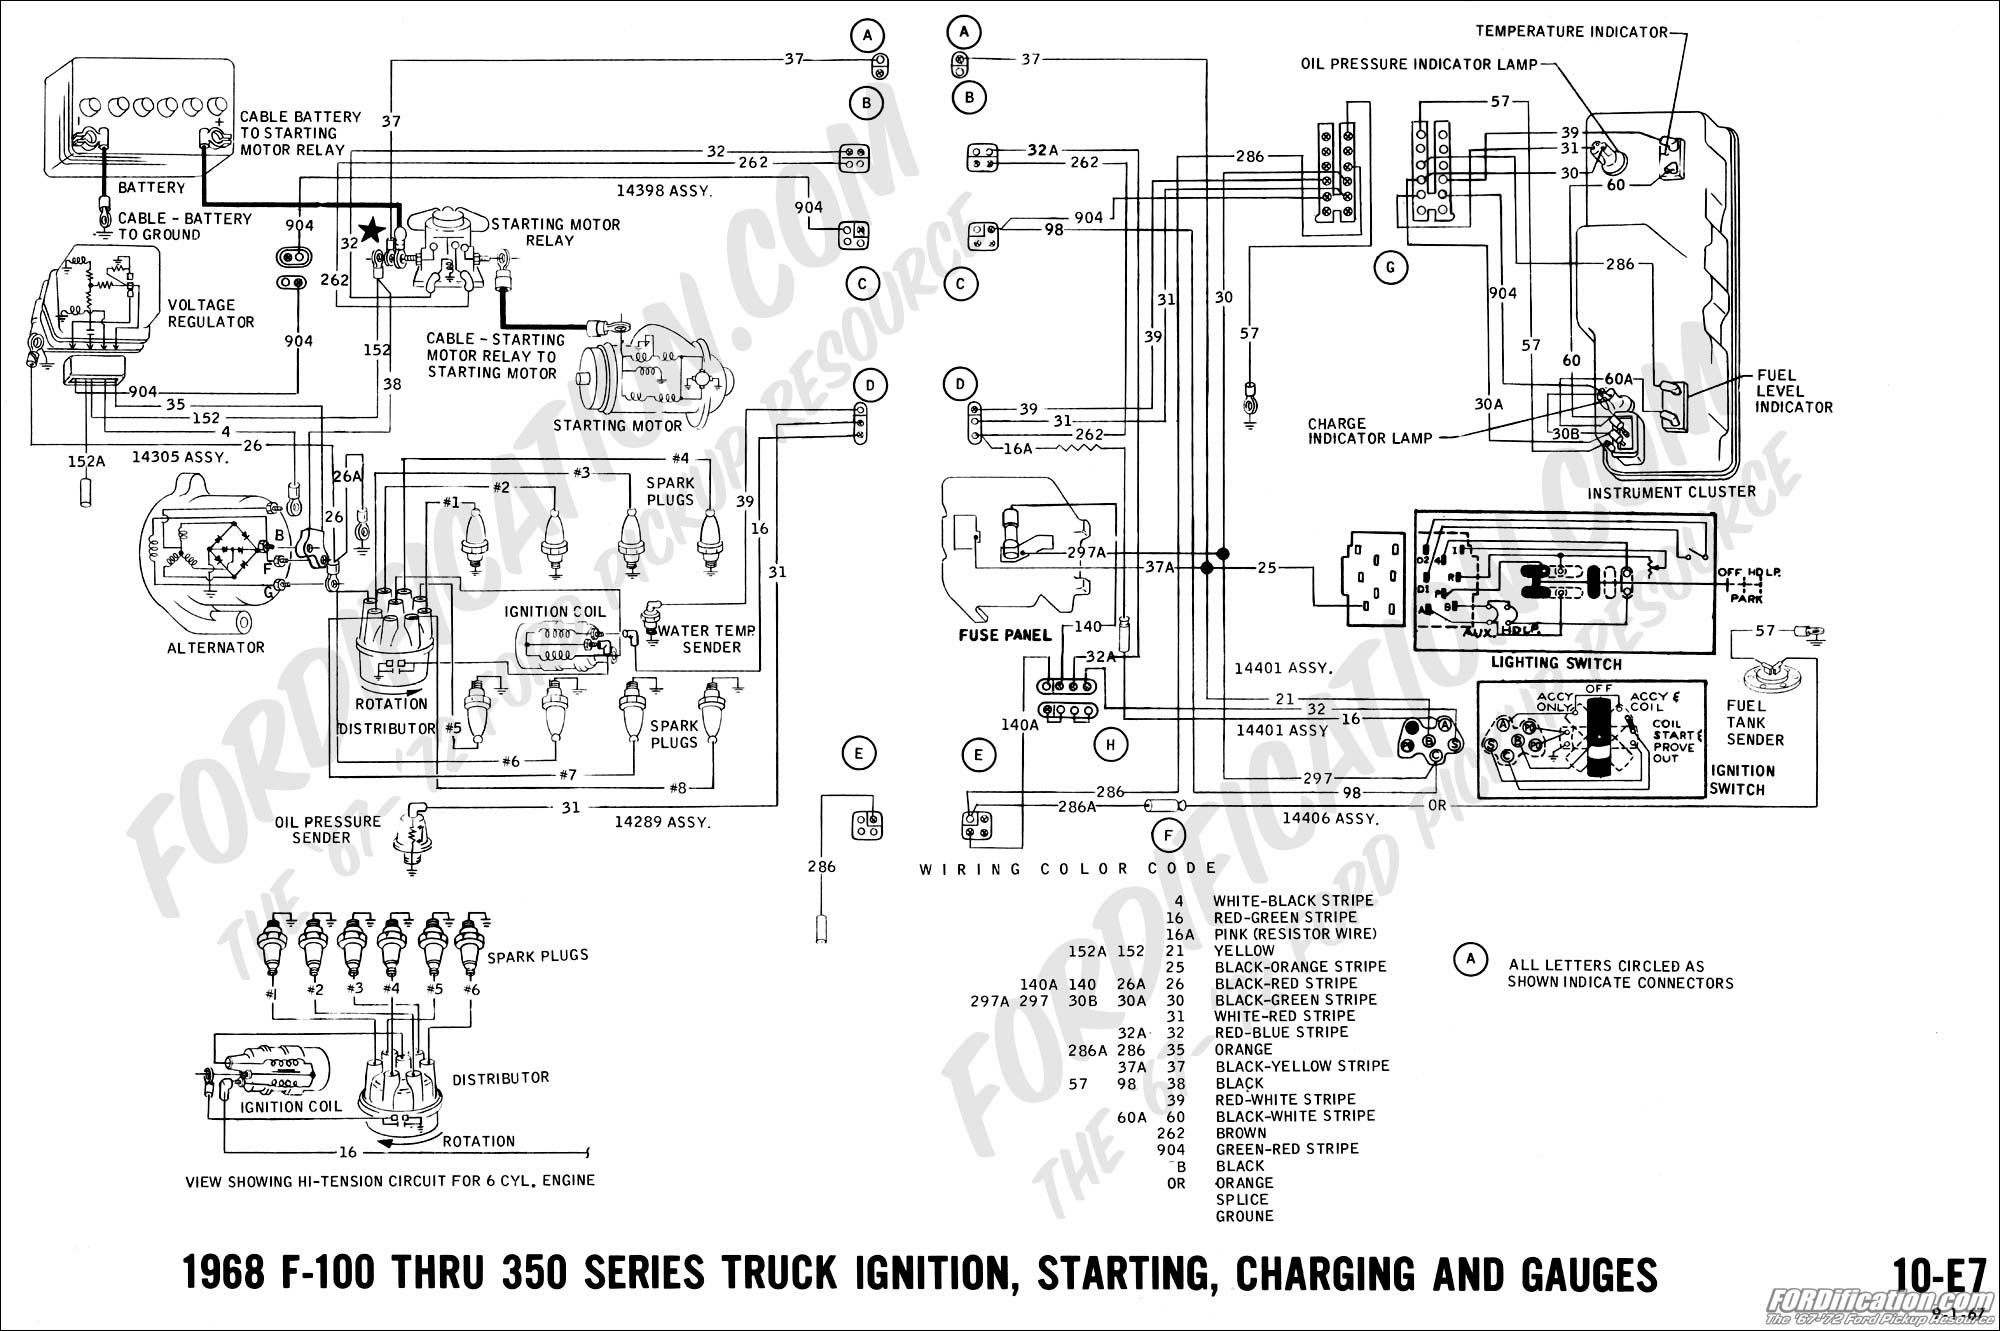 hight resolution of 1974 ford mustang fuel system diagram simple wiring diagrams mustang alternator wiring diagram 1974 ford 302